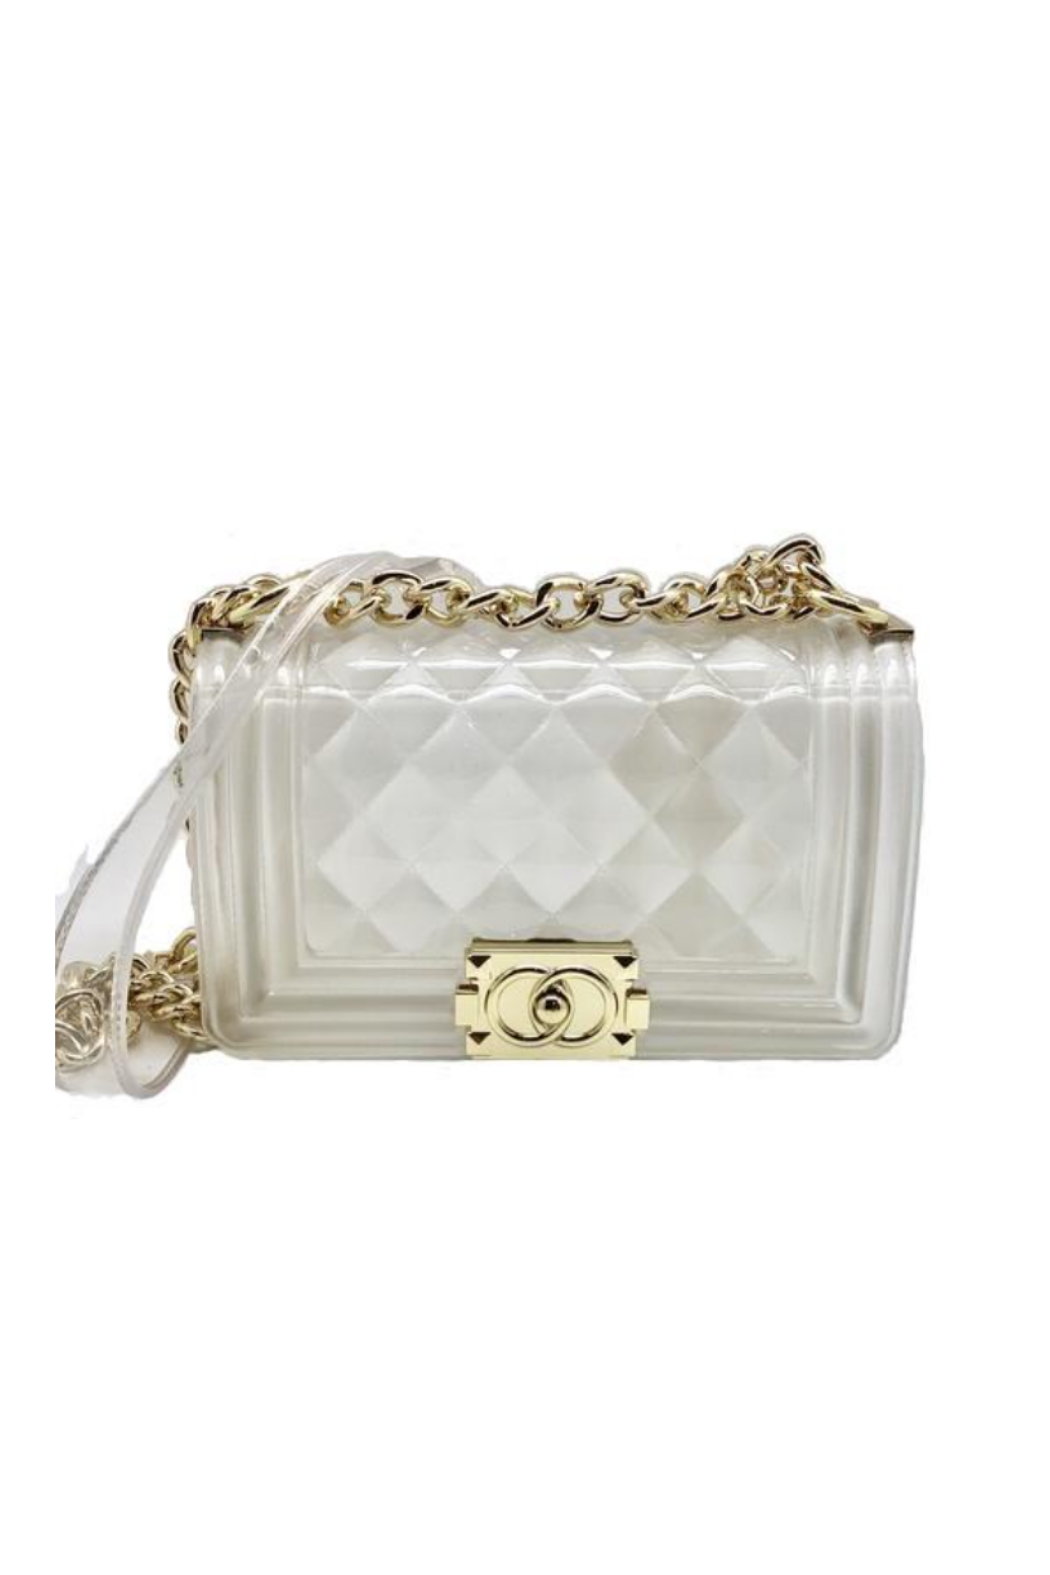 be clear handbags the chloë-  Medium - Front Cropped Image